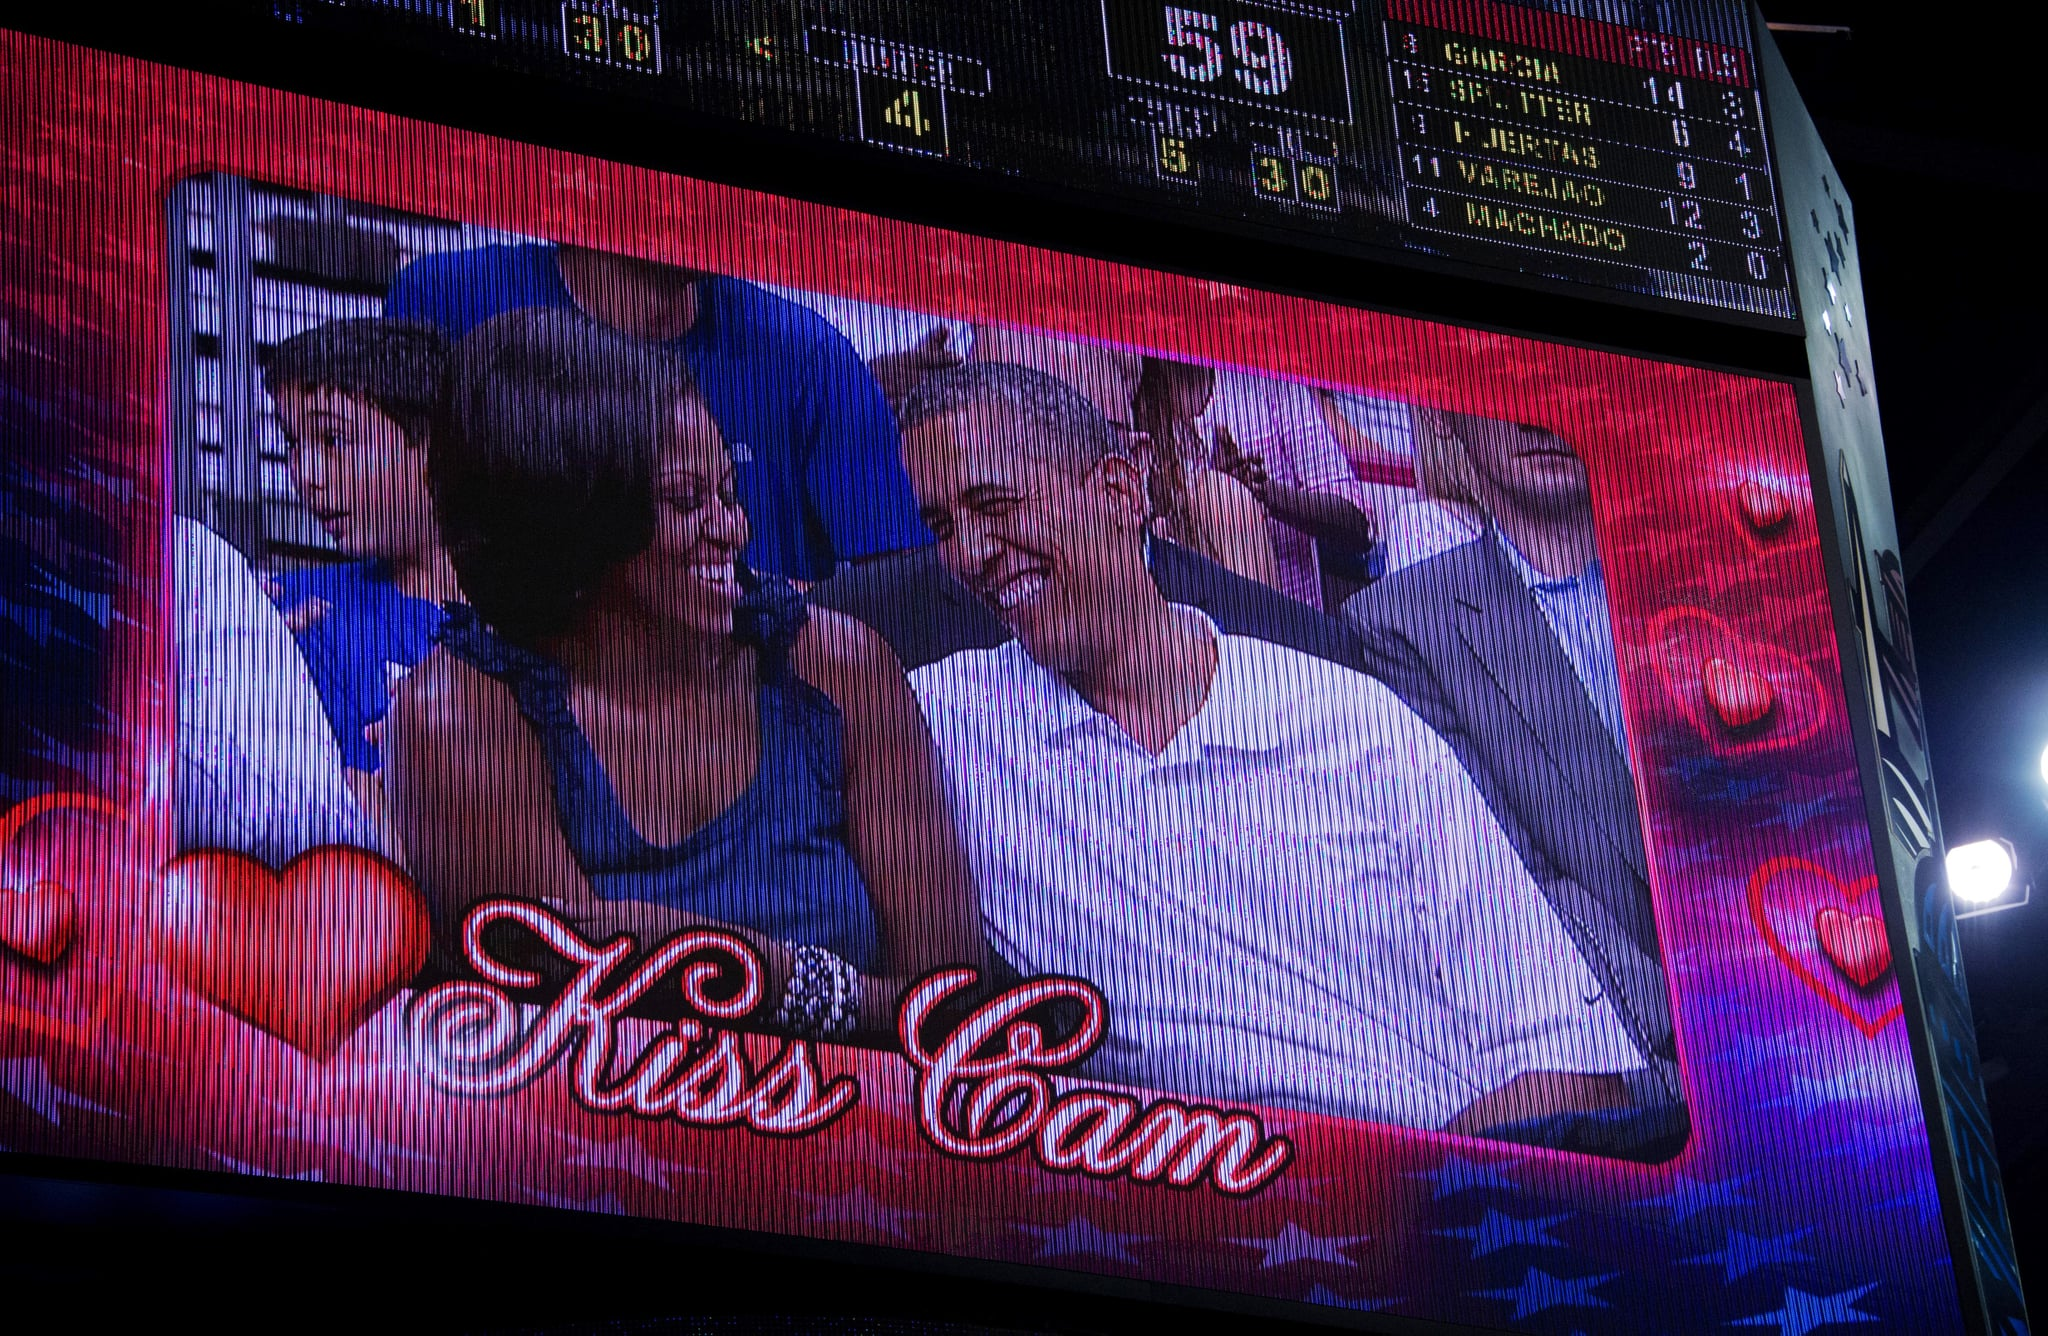 President Obama and First Lady Michelle Obama were caught on the Cam at a United States versus Brazil basketball game.